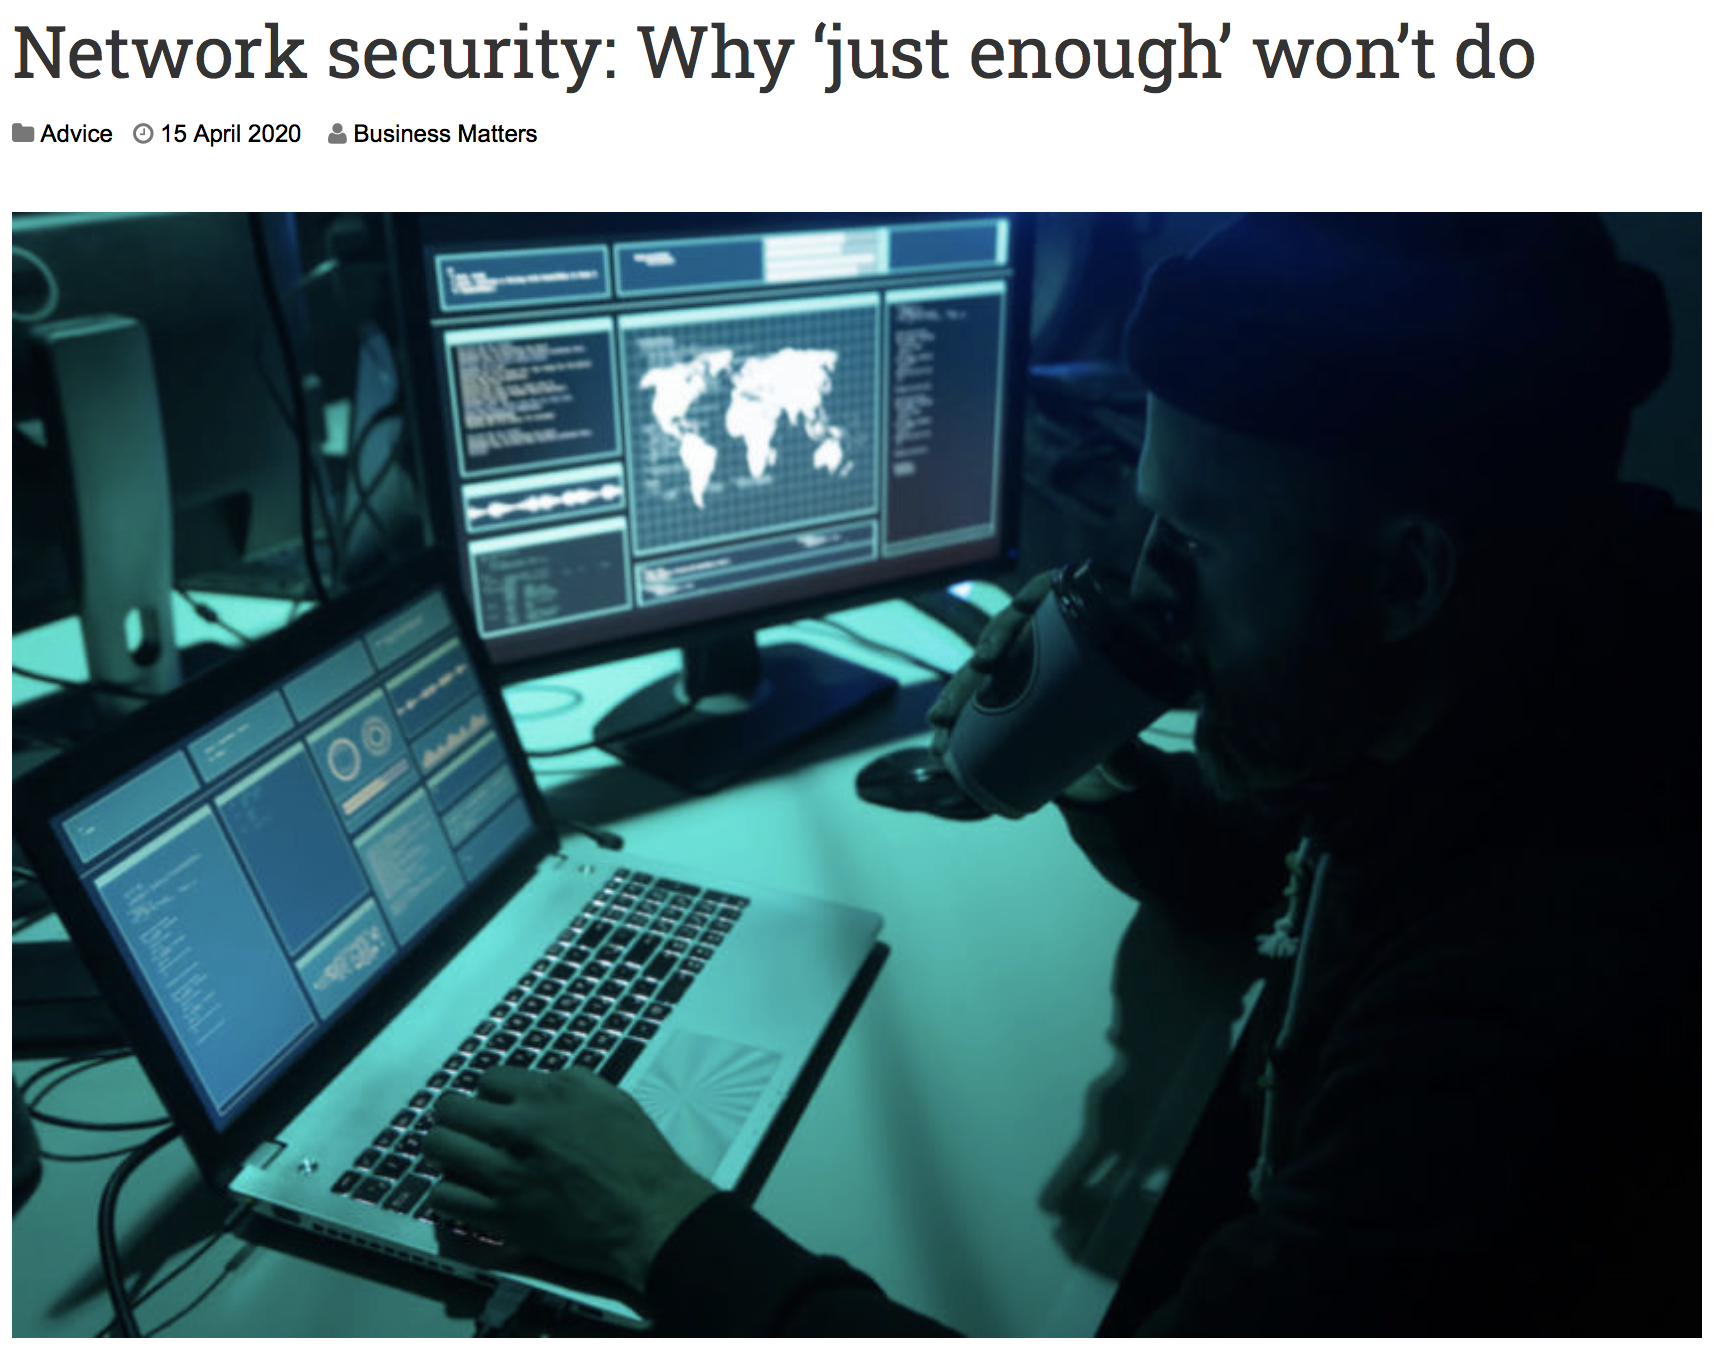 Network Security Article